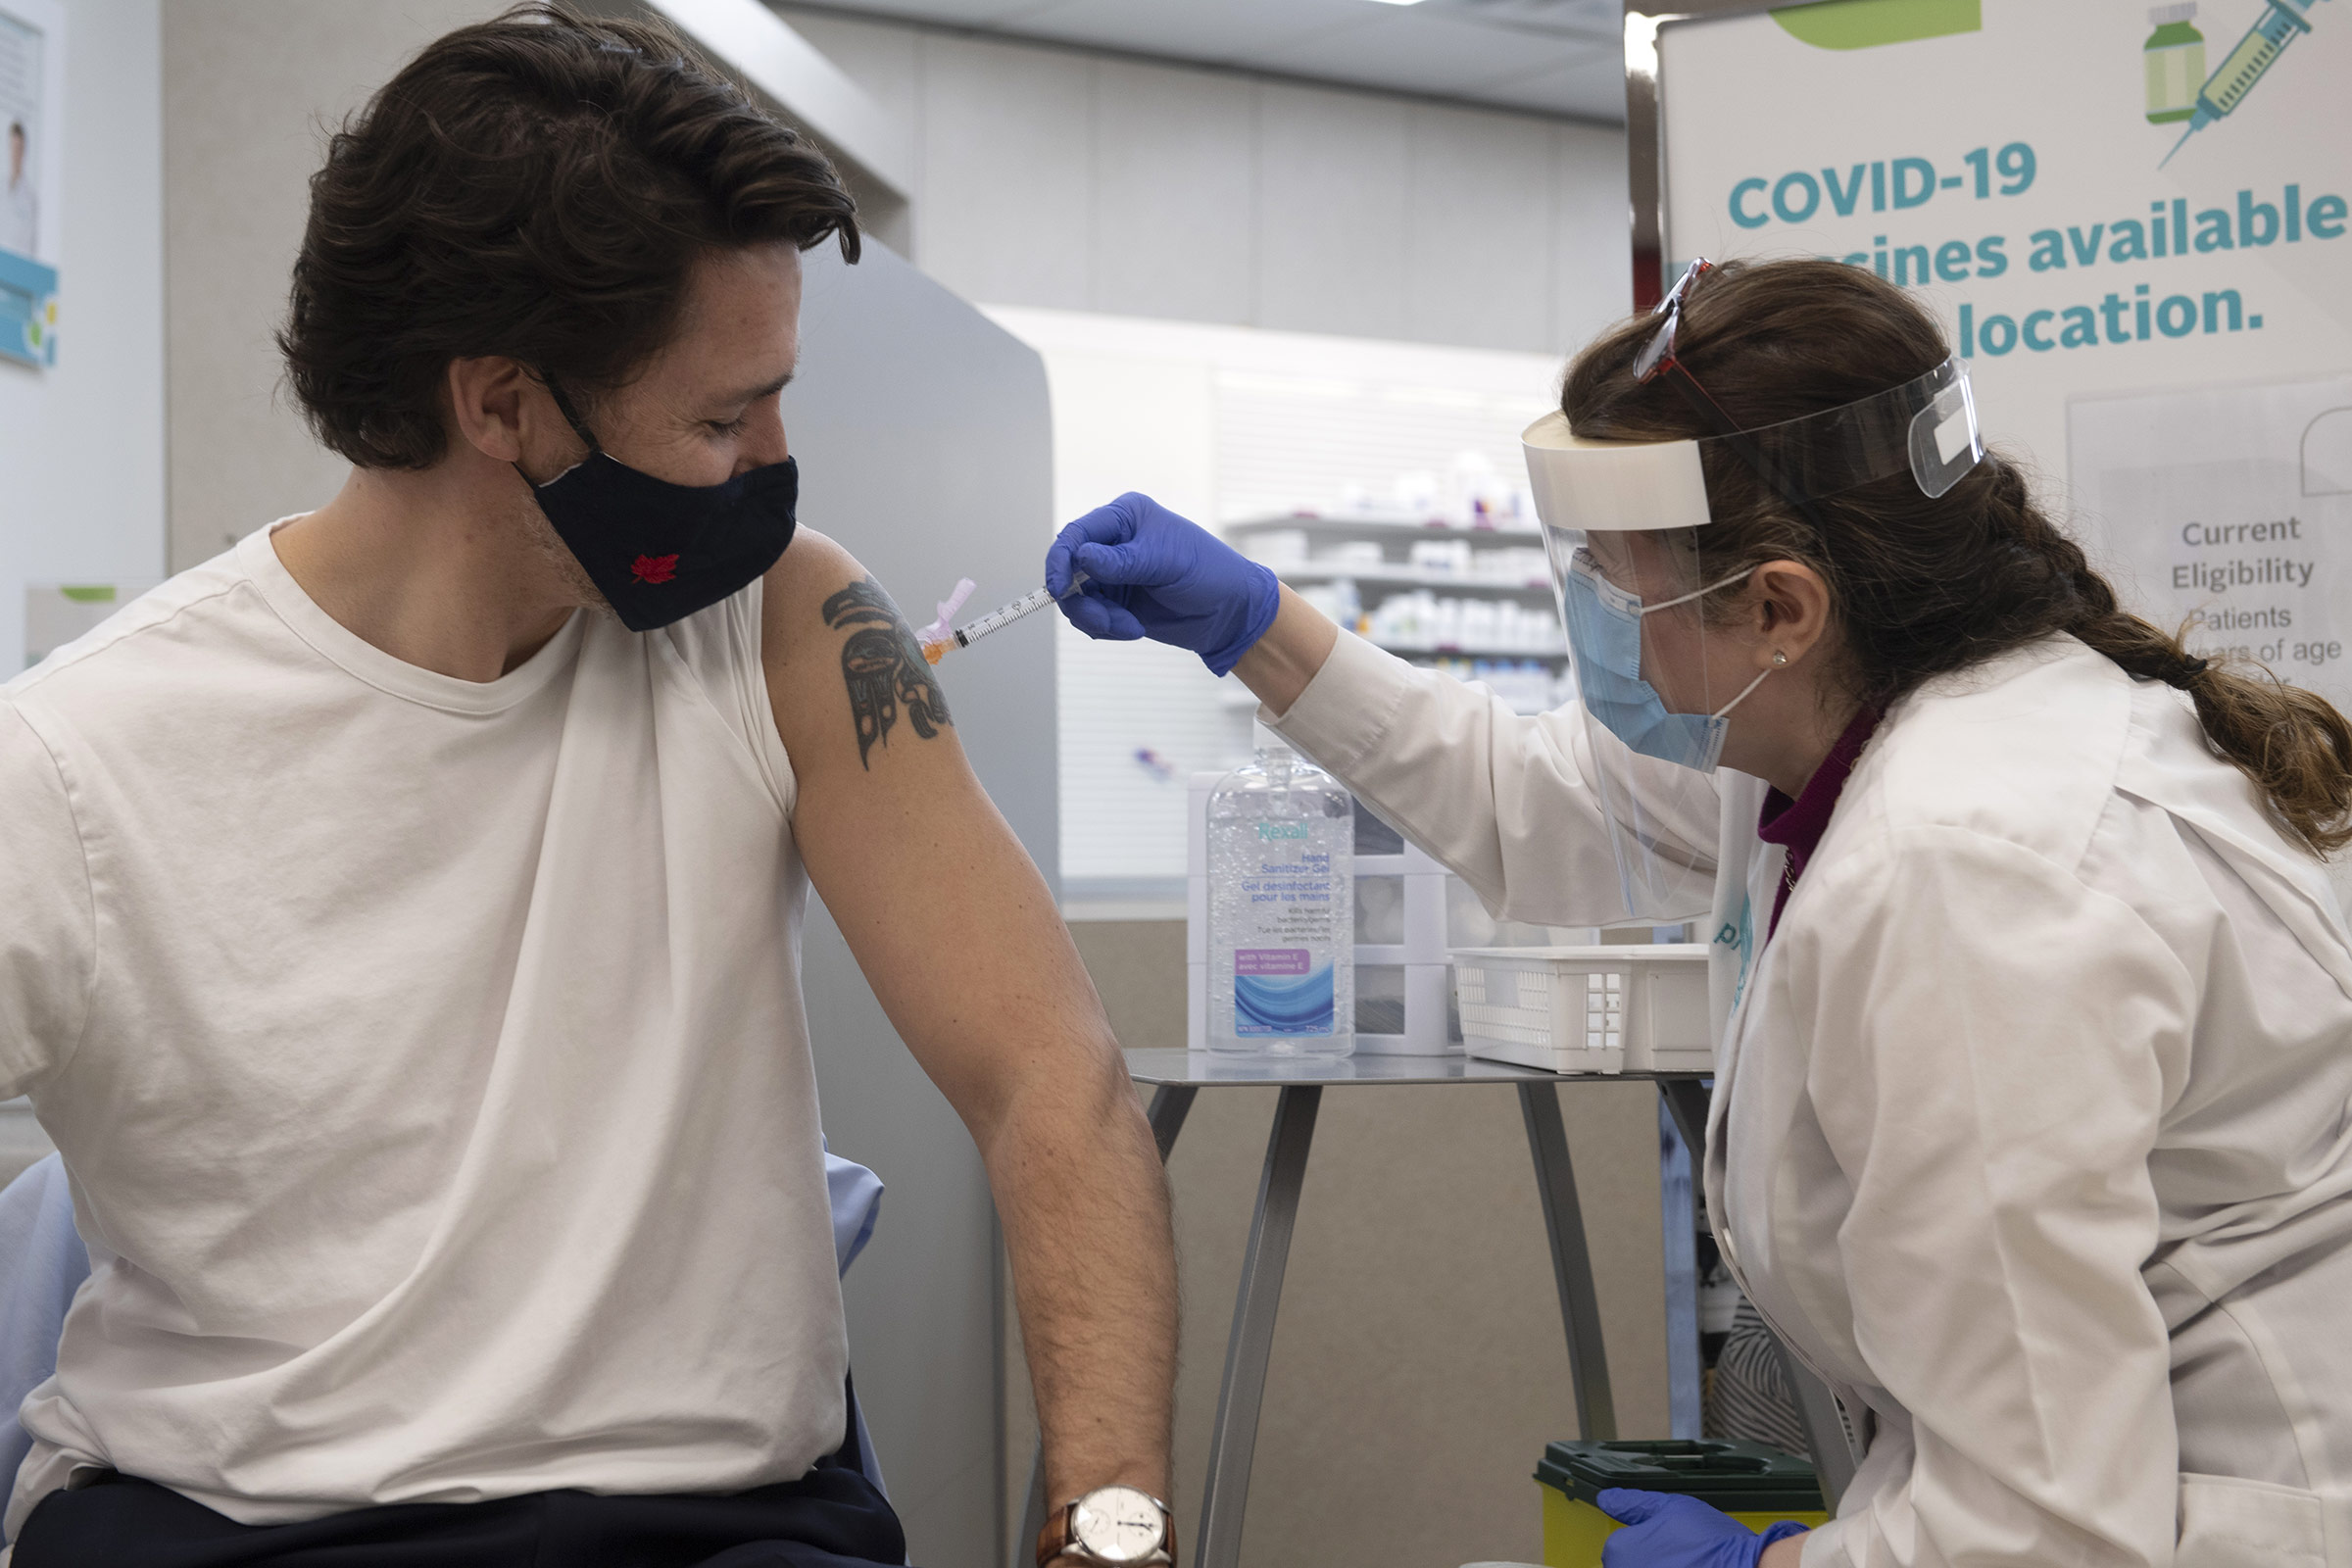 Canadian Prime Minister Justin Trudeau receives a dose of the AstraZeneca Covid-19 vaccine in Ottawa, Canada, on Friday, April 23.